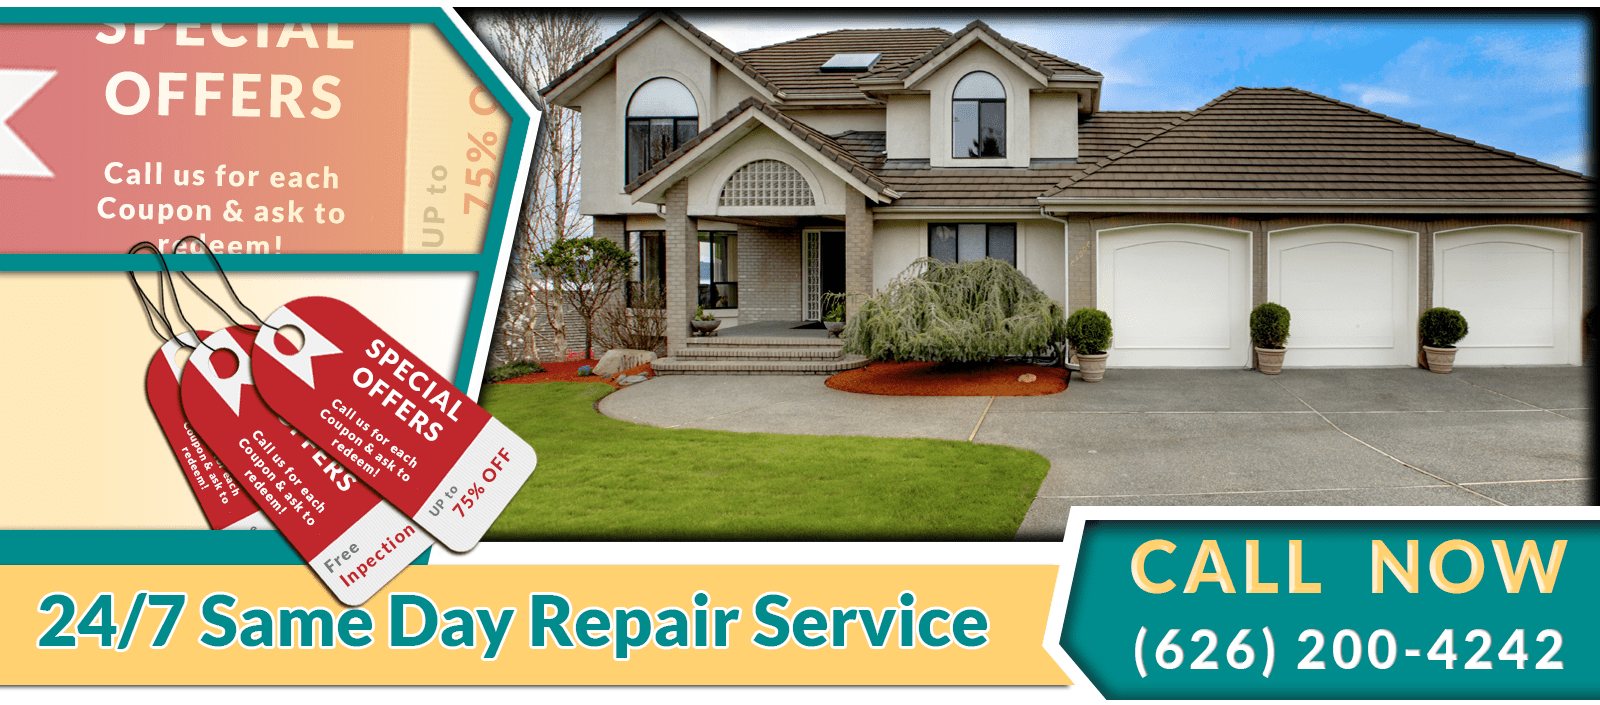 Special Offers Discounts Coupon Garage Door Repair Pasadena